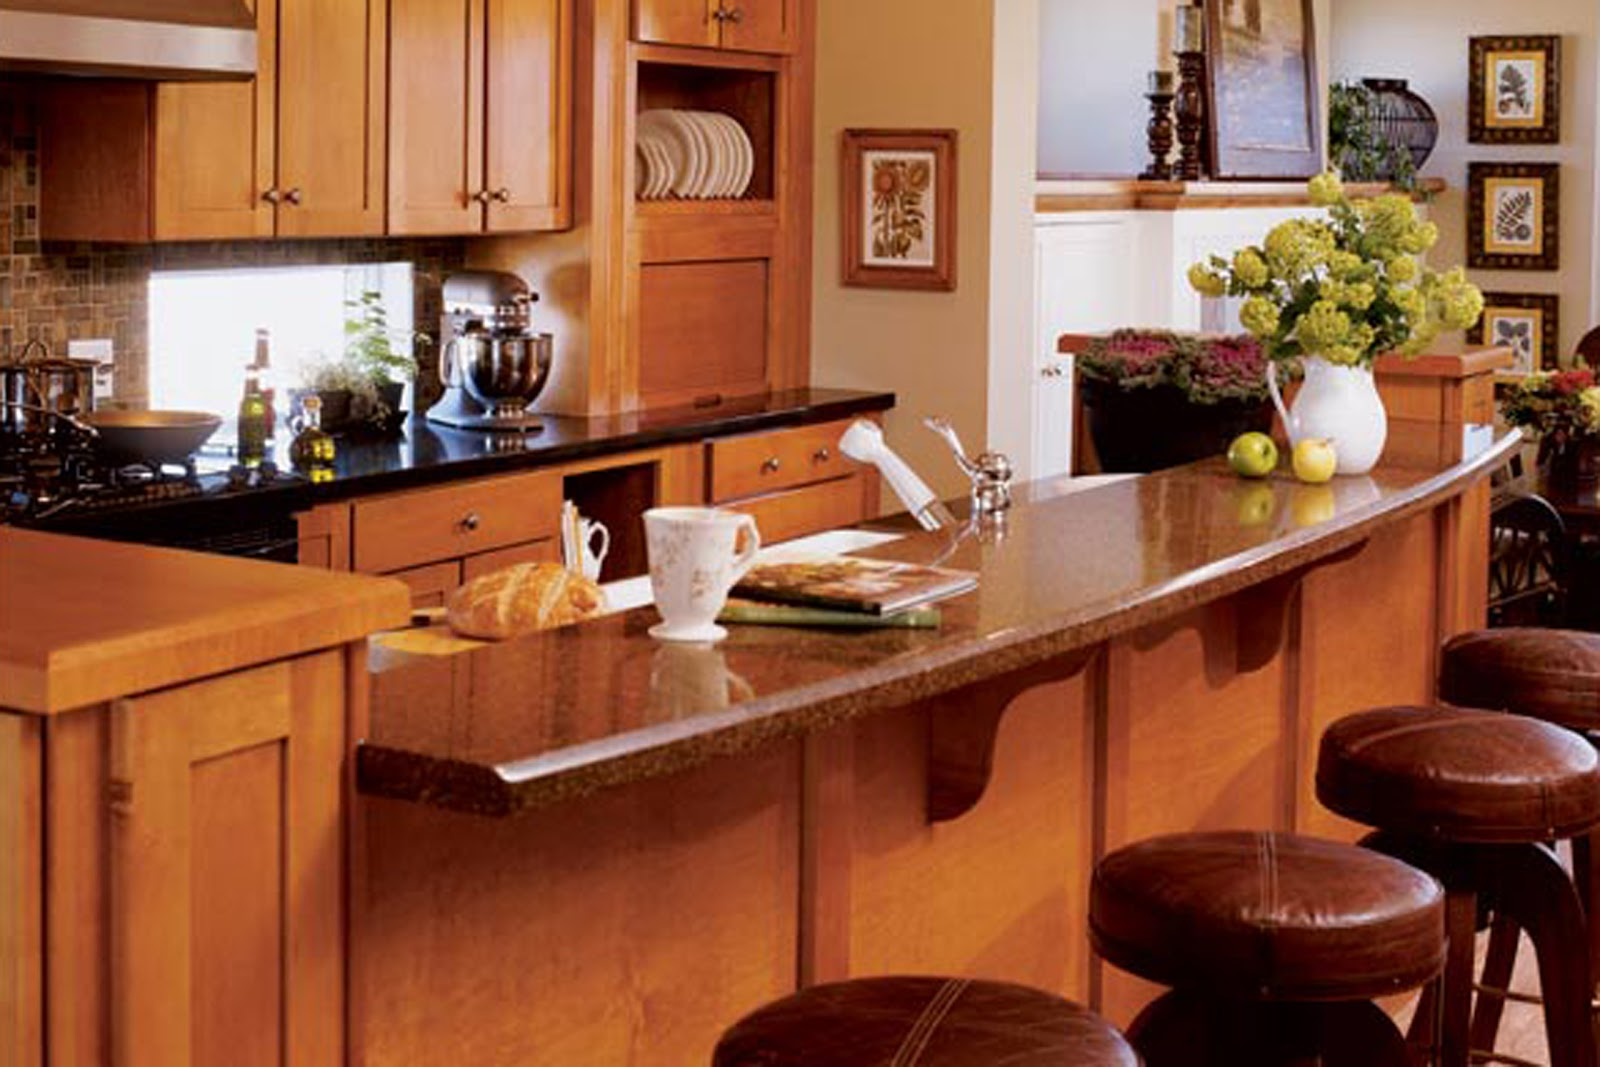 Simply elegant home designs blog home design ideas 3 for Small kitchen designs with island